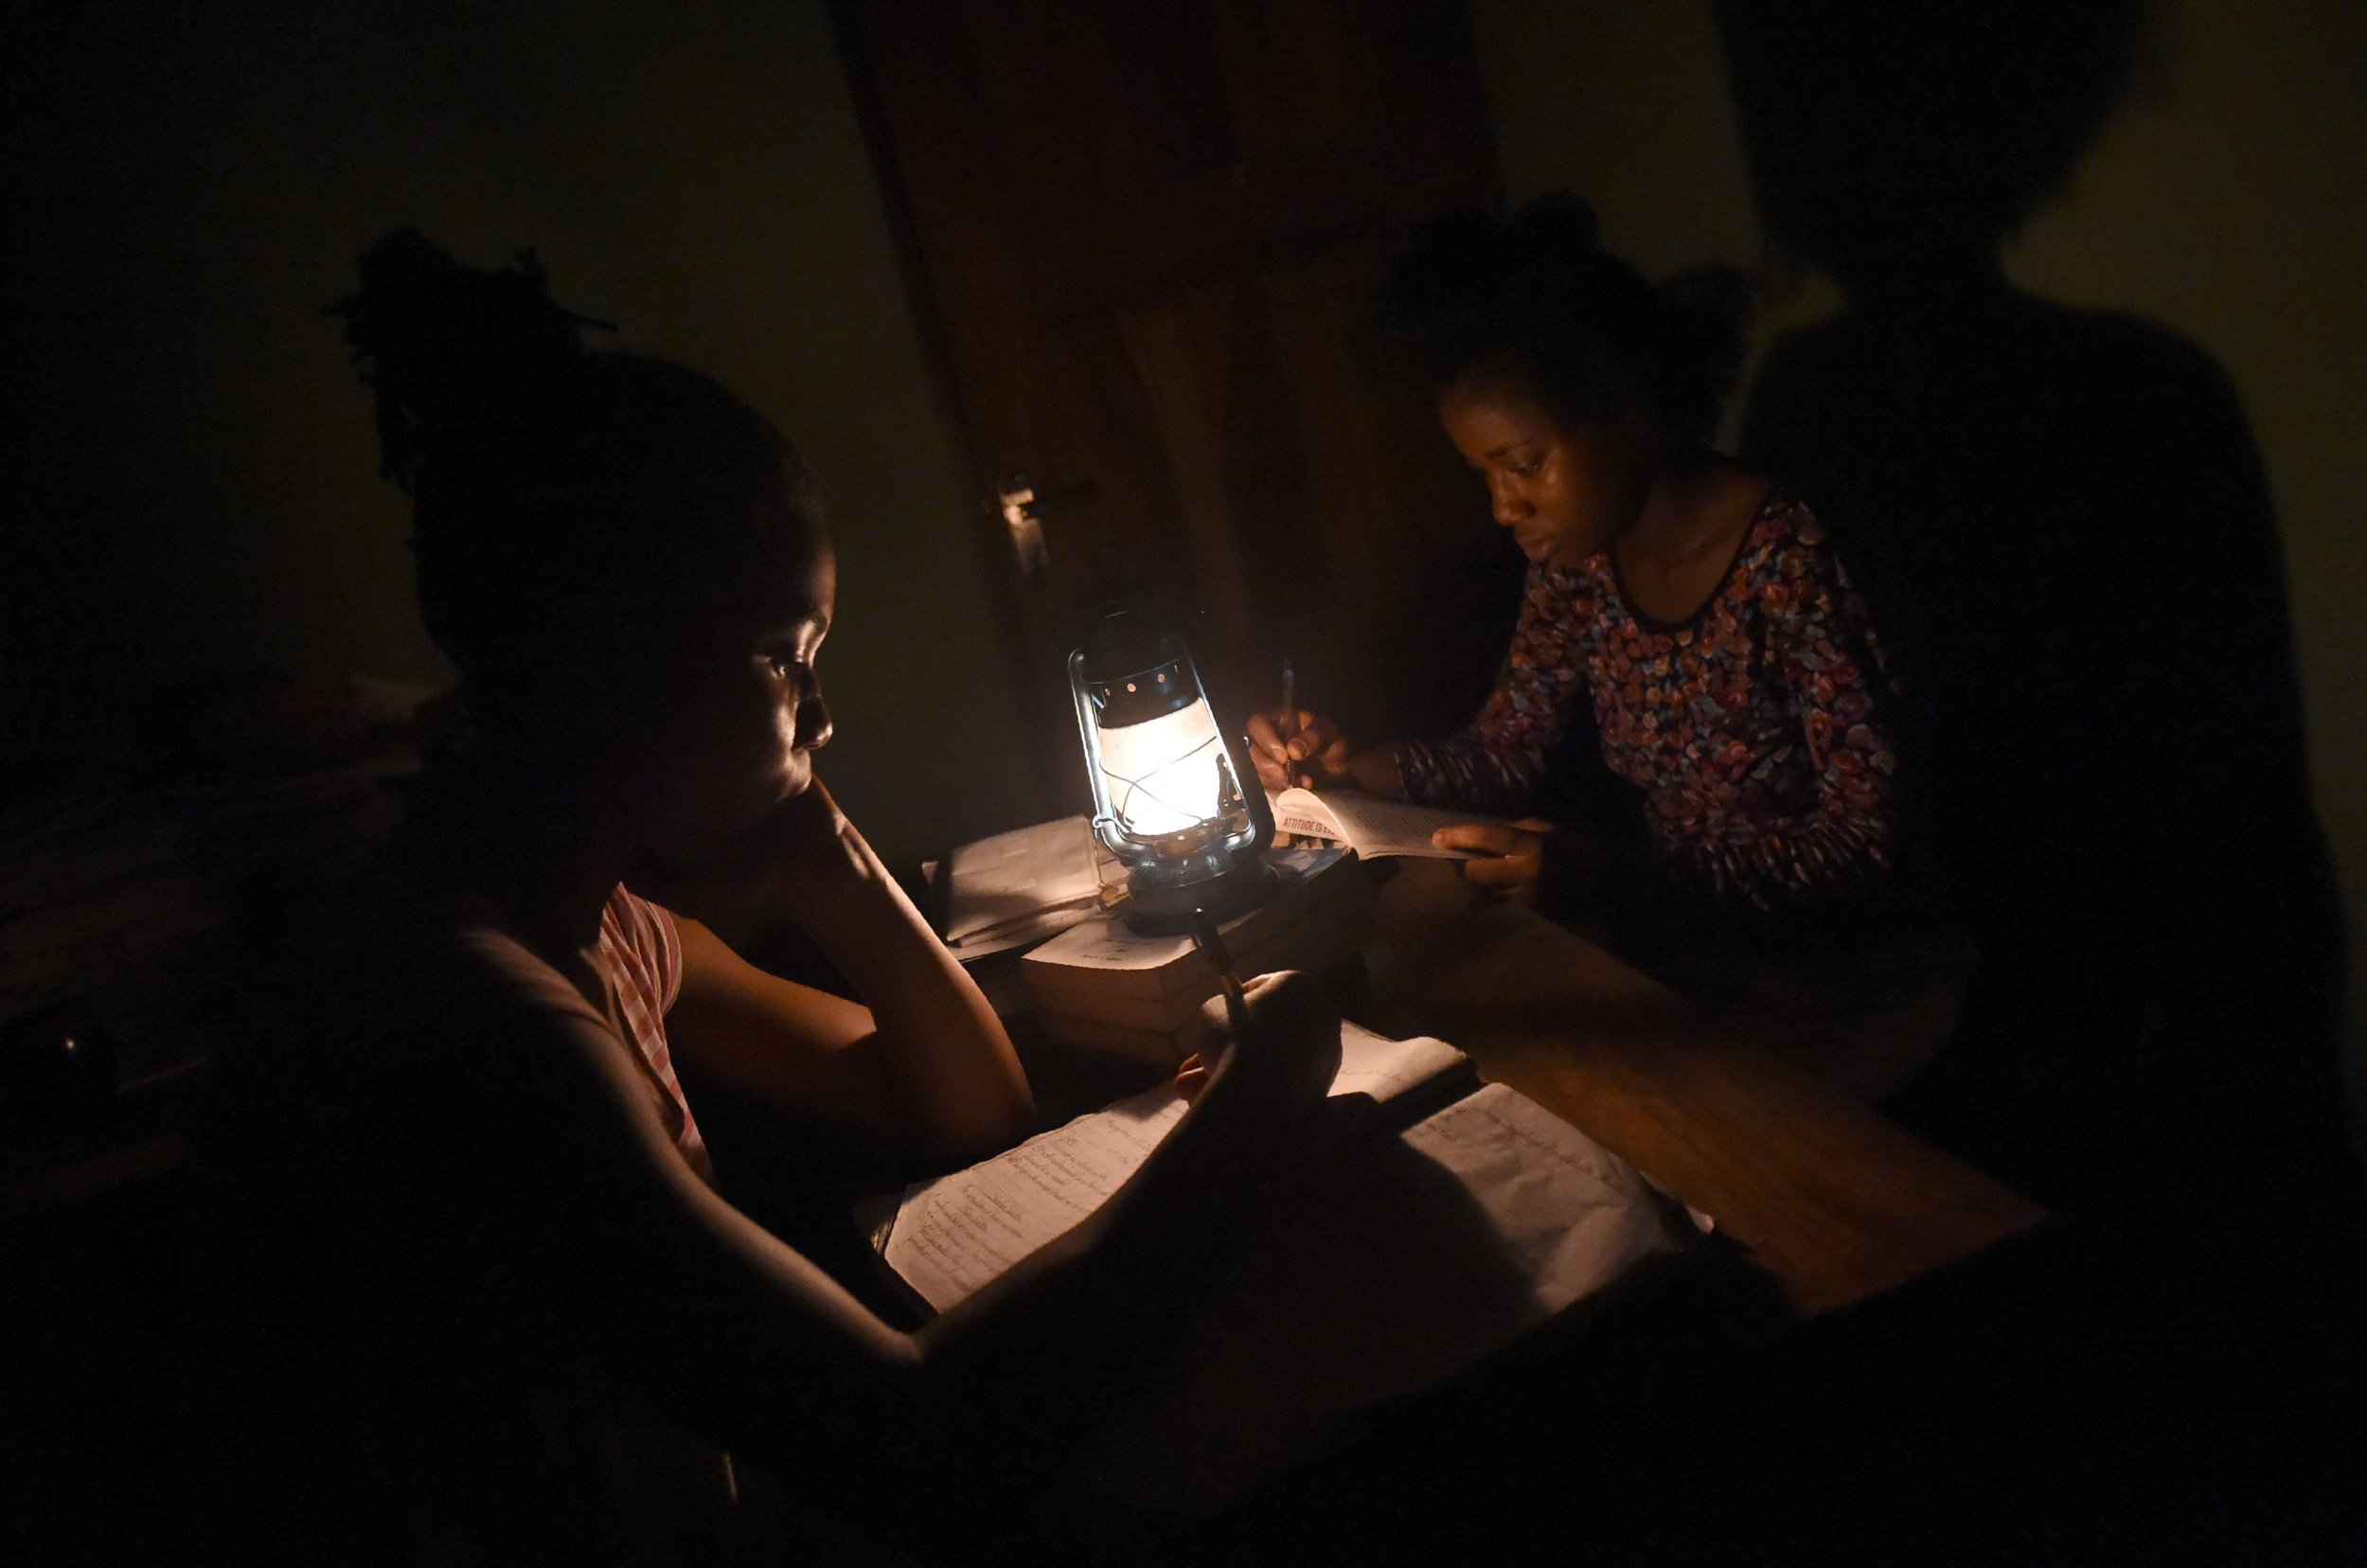 Nigeria students in darkness